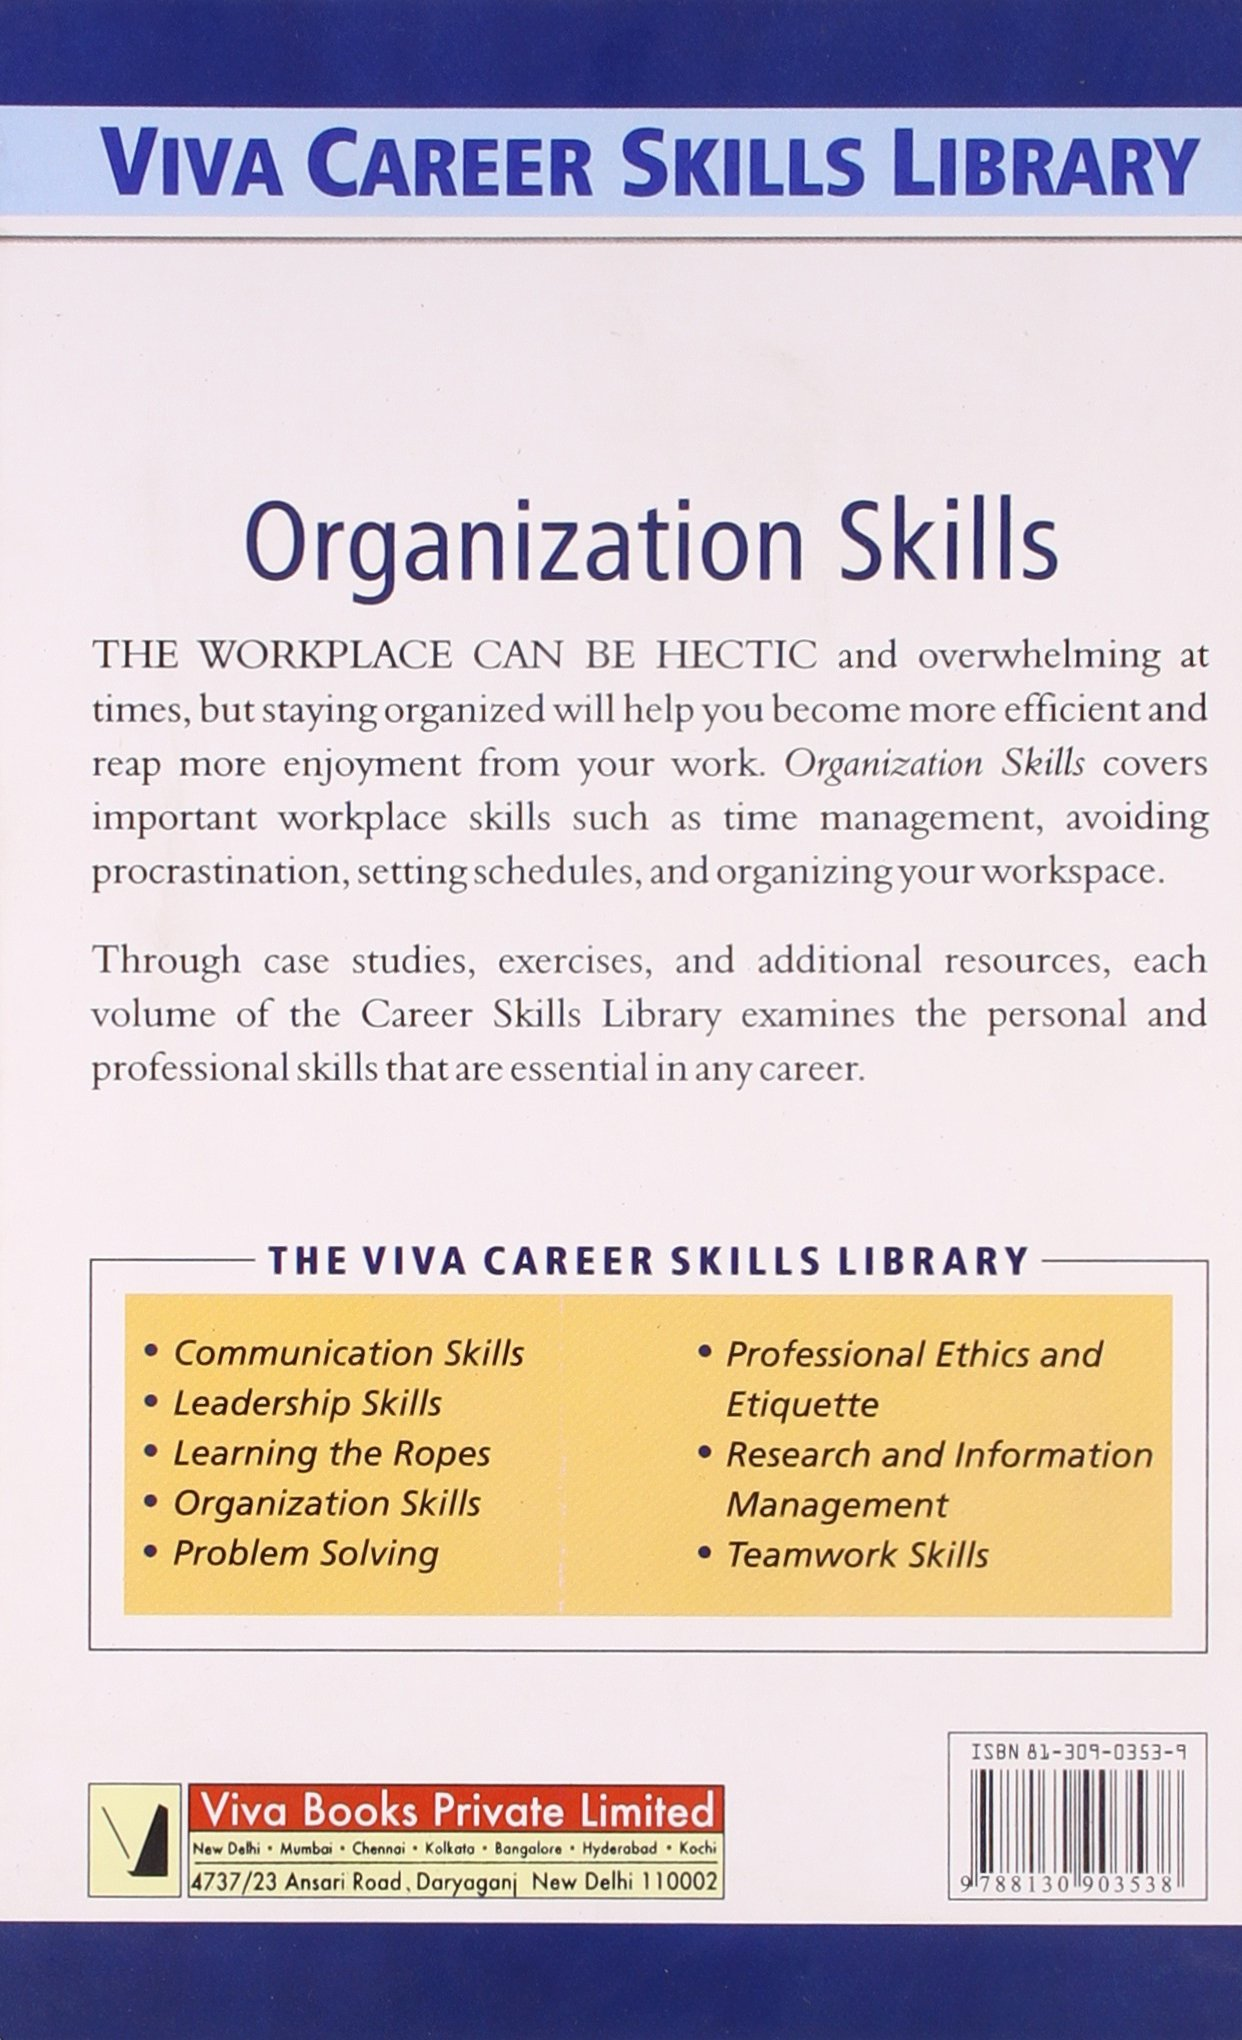 viva career skills library organization skills 2 e ferguson viva career skills library organization skills 2 e ferguson 9788130903538 amazon com books